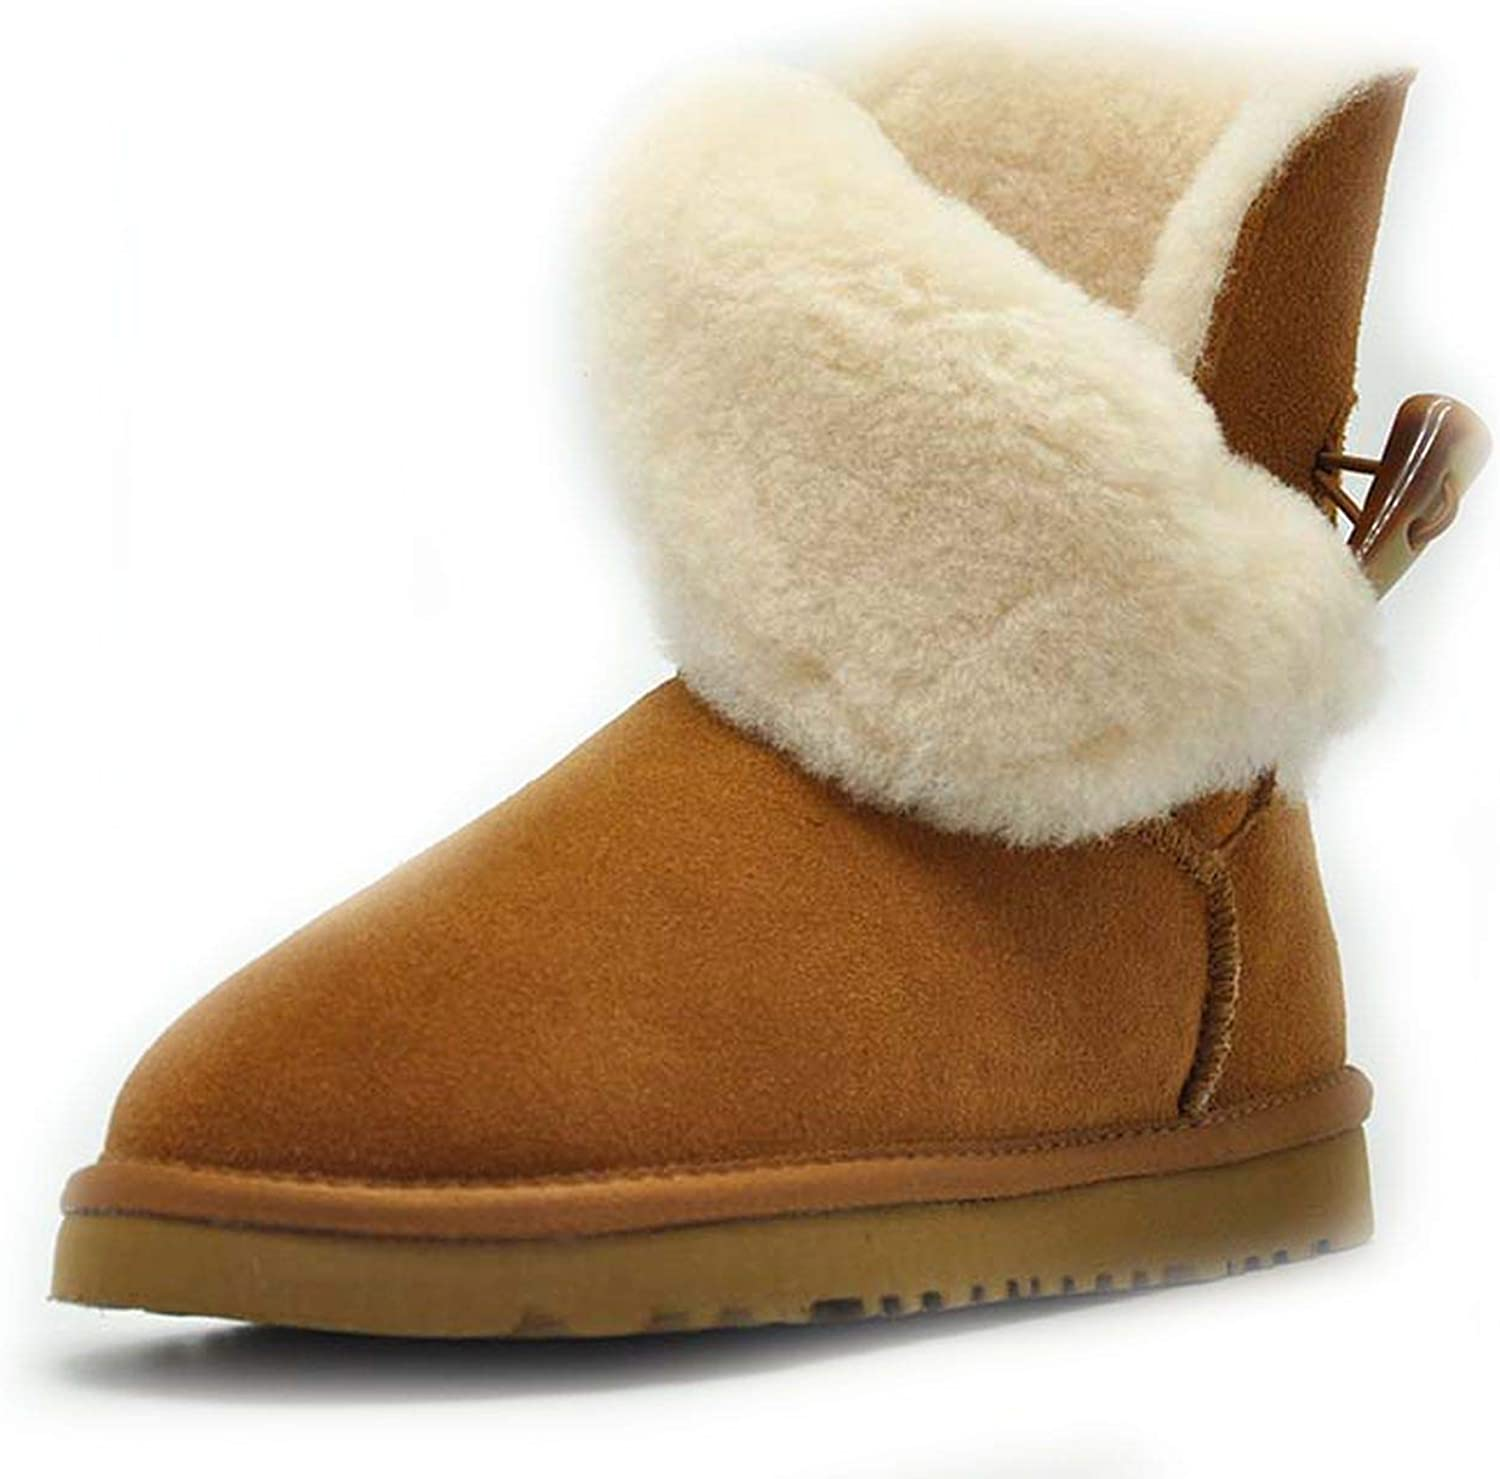 Talk about heaven 100% Real Fur Classic Waterproof Genuine Cowhide Leather Snow Boots for Women